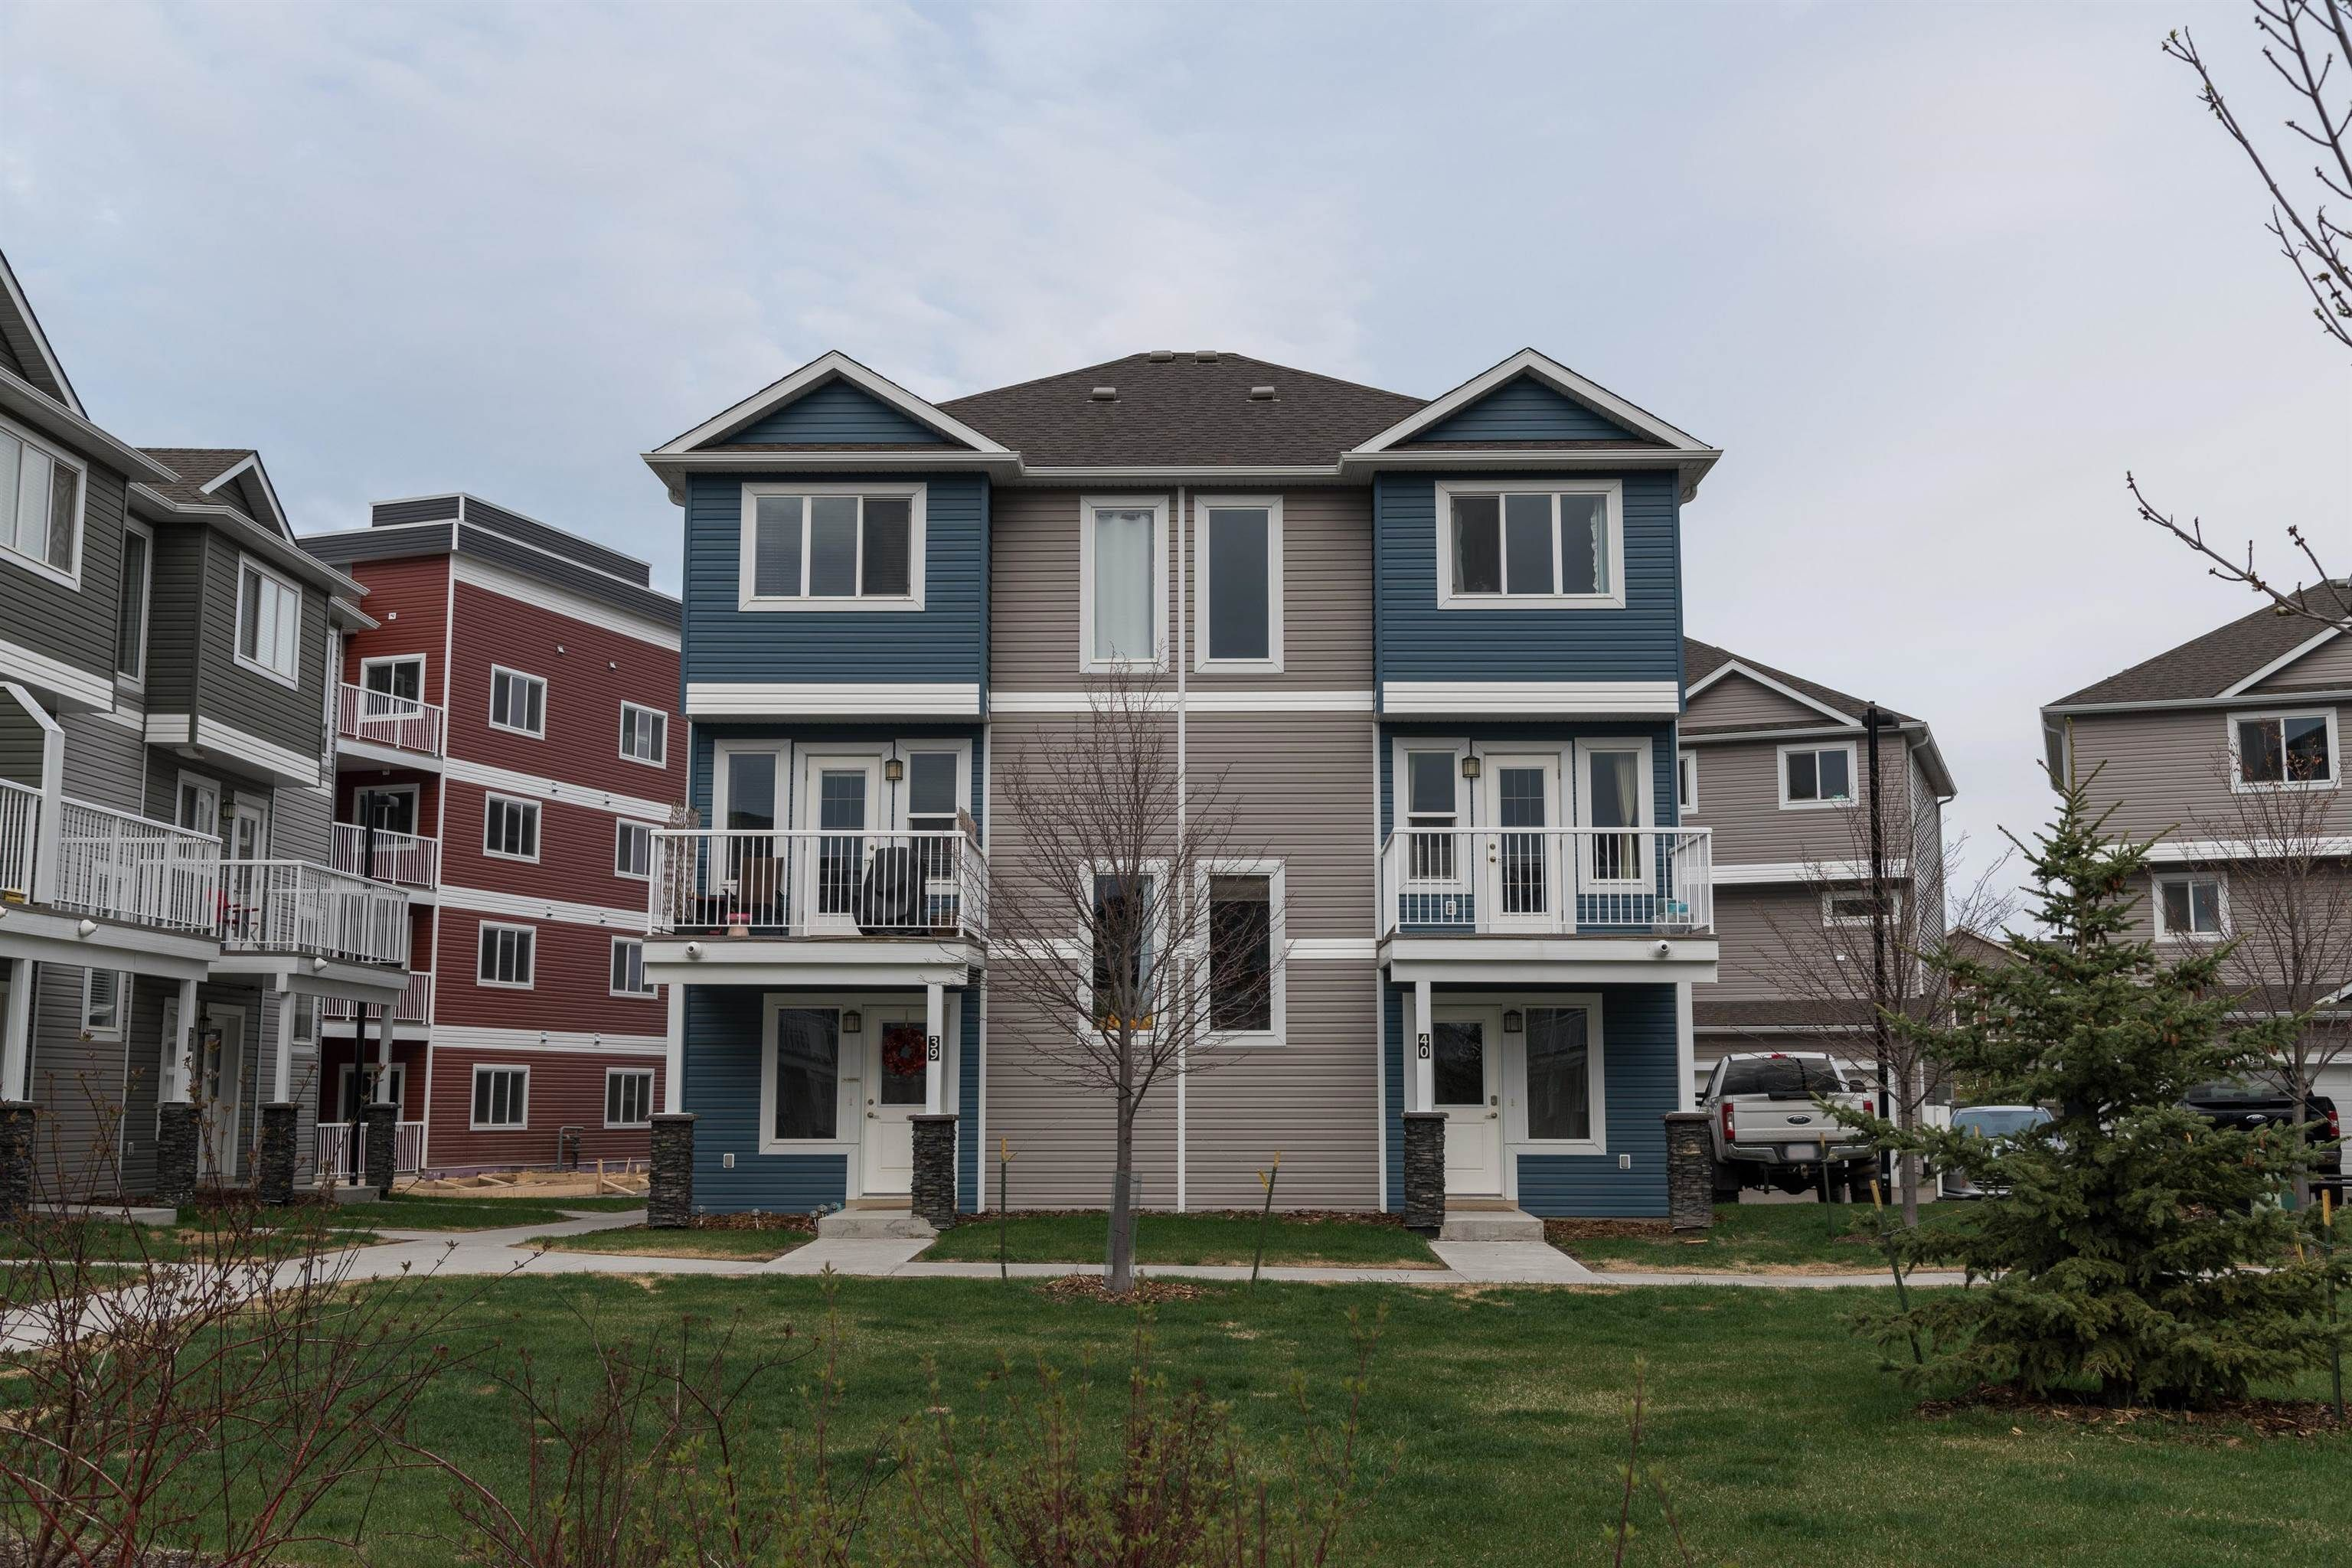 Main Photo: 40 1816 RUTHERFORD Road in Edmonton: Zone 55 Townhouse for sale : MLS®# E4259832